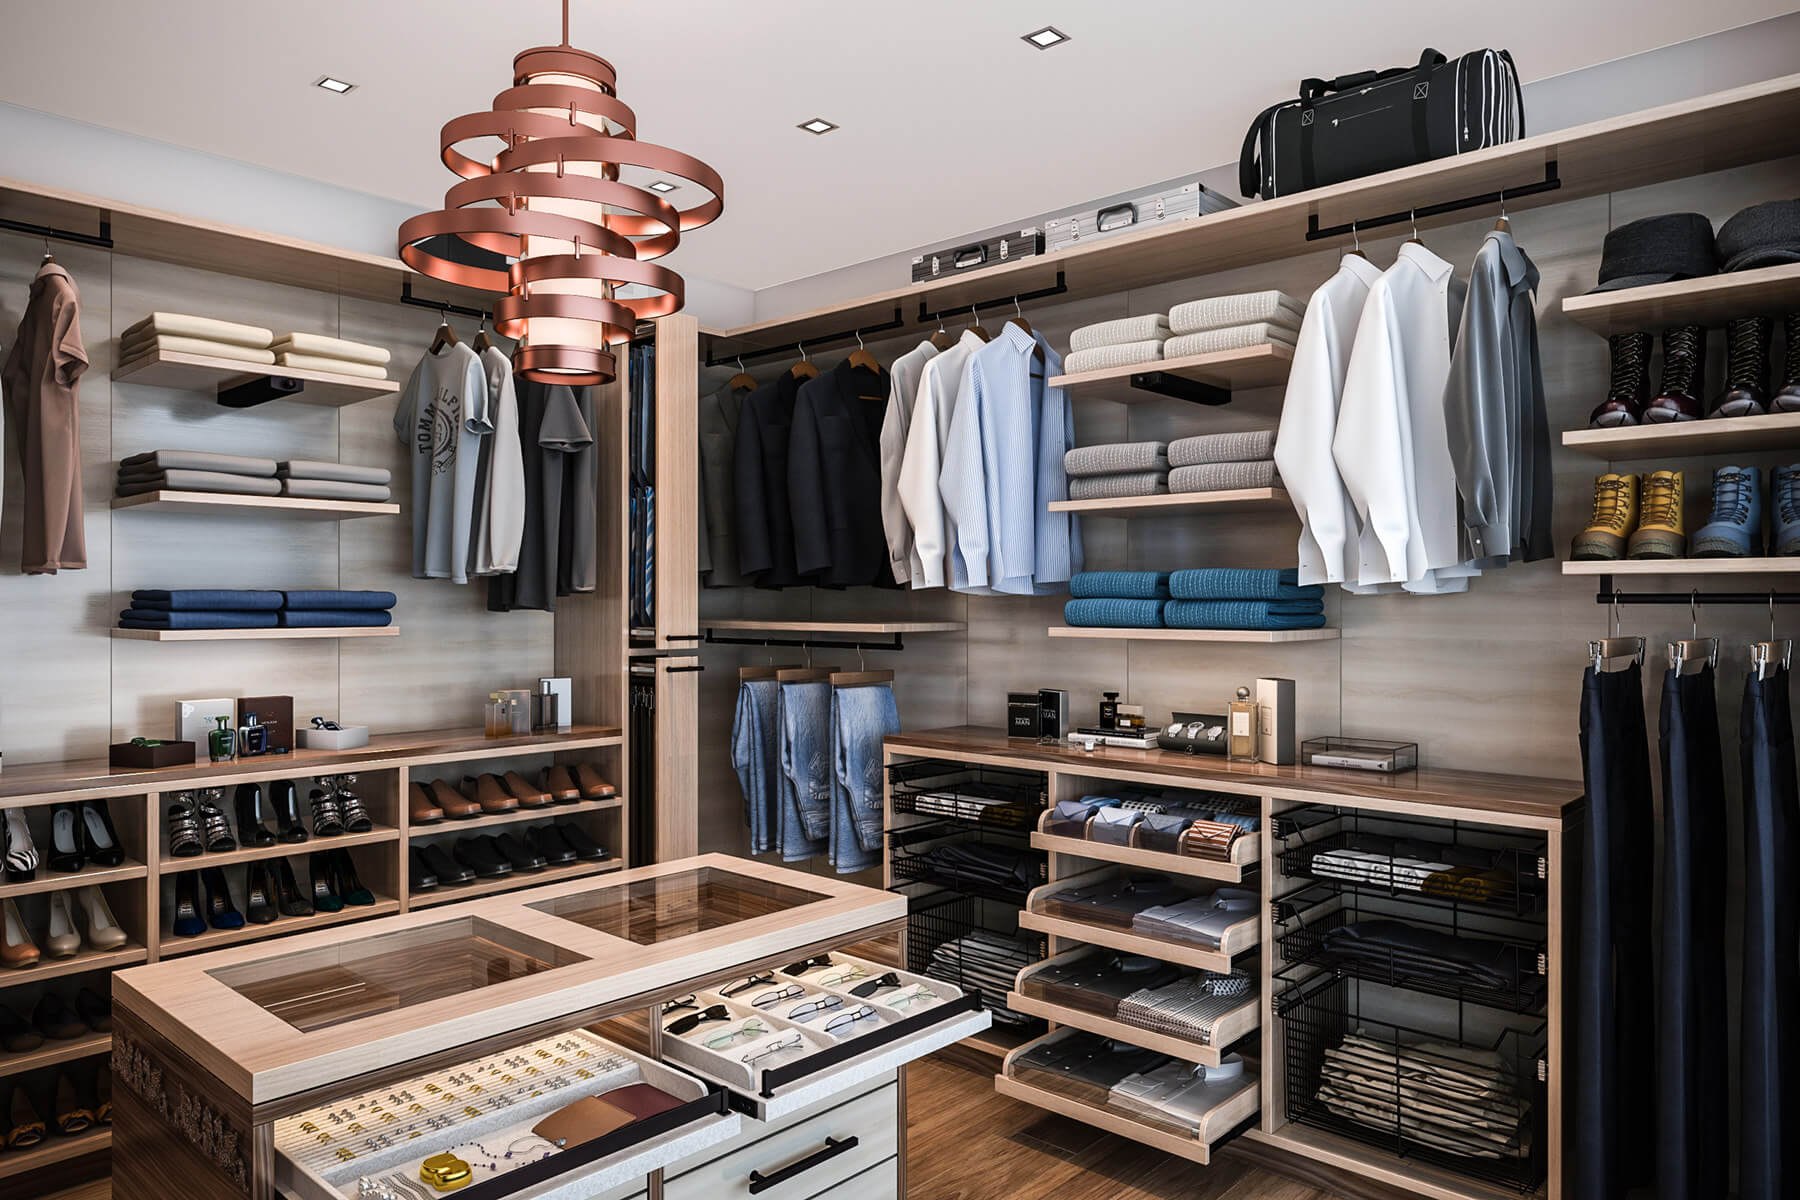 A Japanese Inspired Apartment With Plenty Storage Systems: 67 Reach-In And Walk-In Bedroom Closet Storage Systems